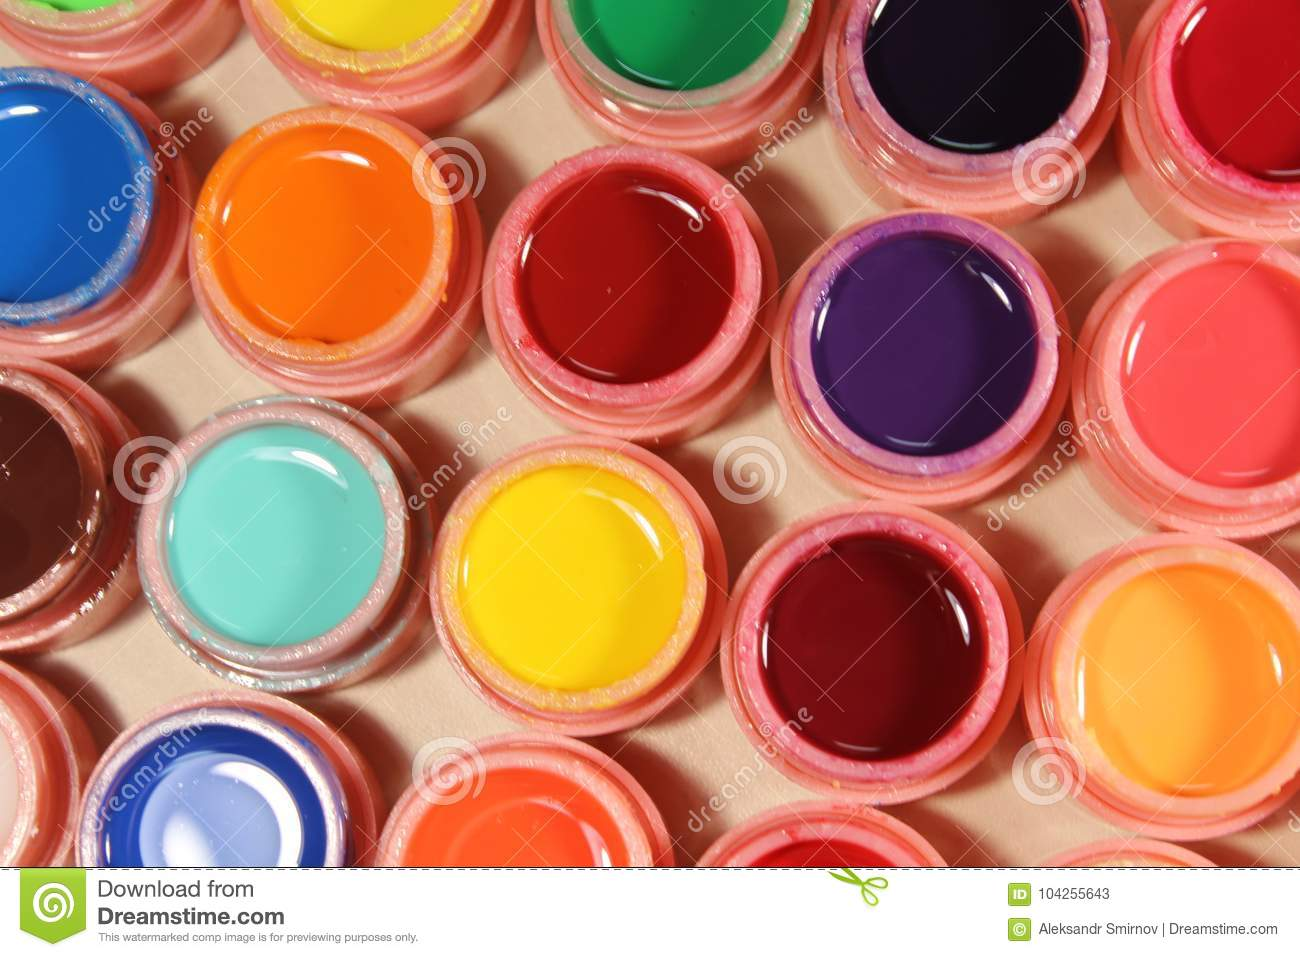 Bright Colors For Nails, Many Colors Stock Image - Image of polish ...